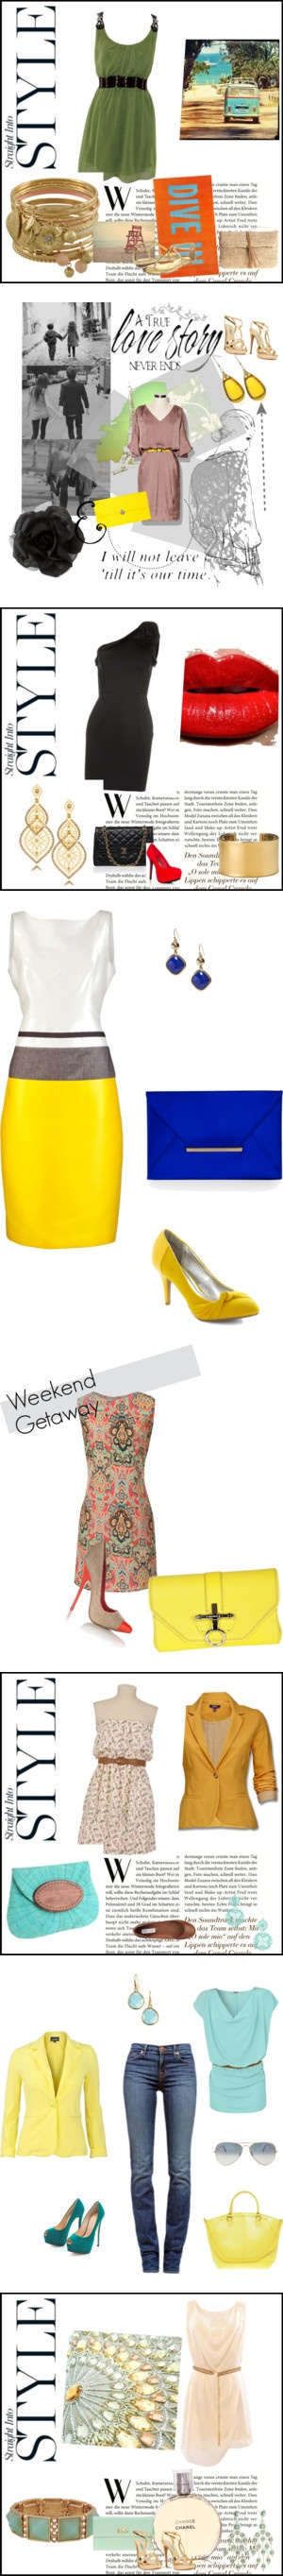 """""""The sunshine collection"""" by gilleastwood on Polyvore"""